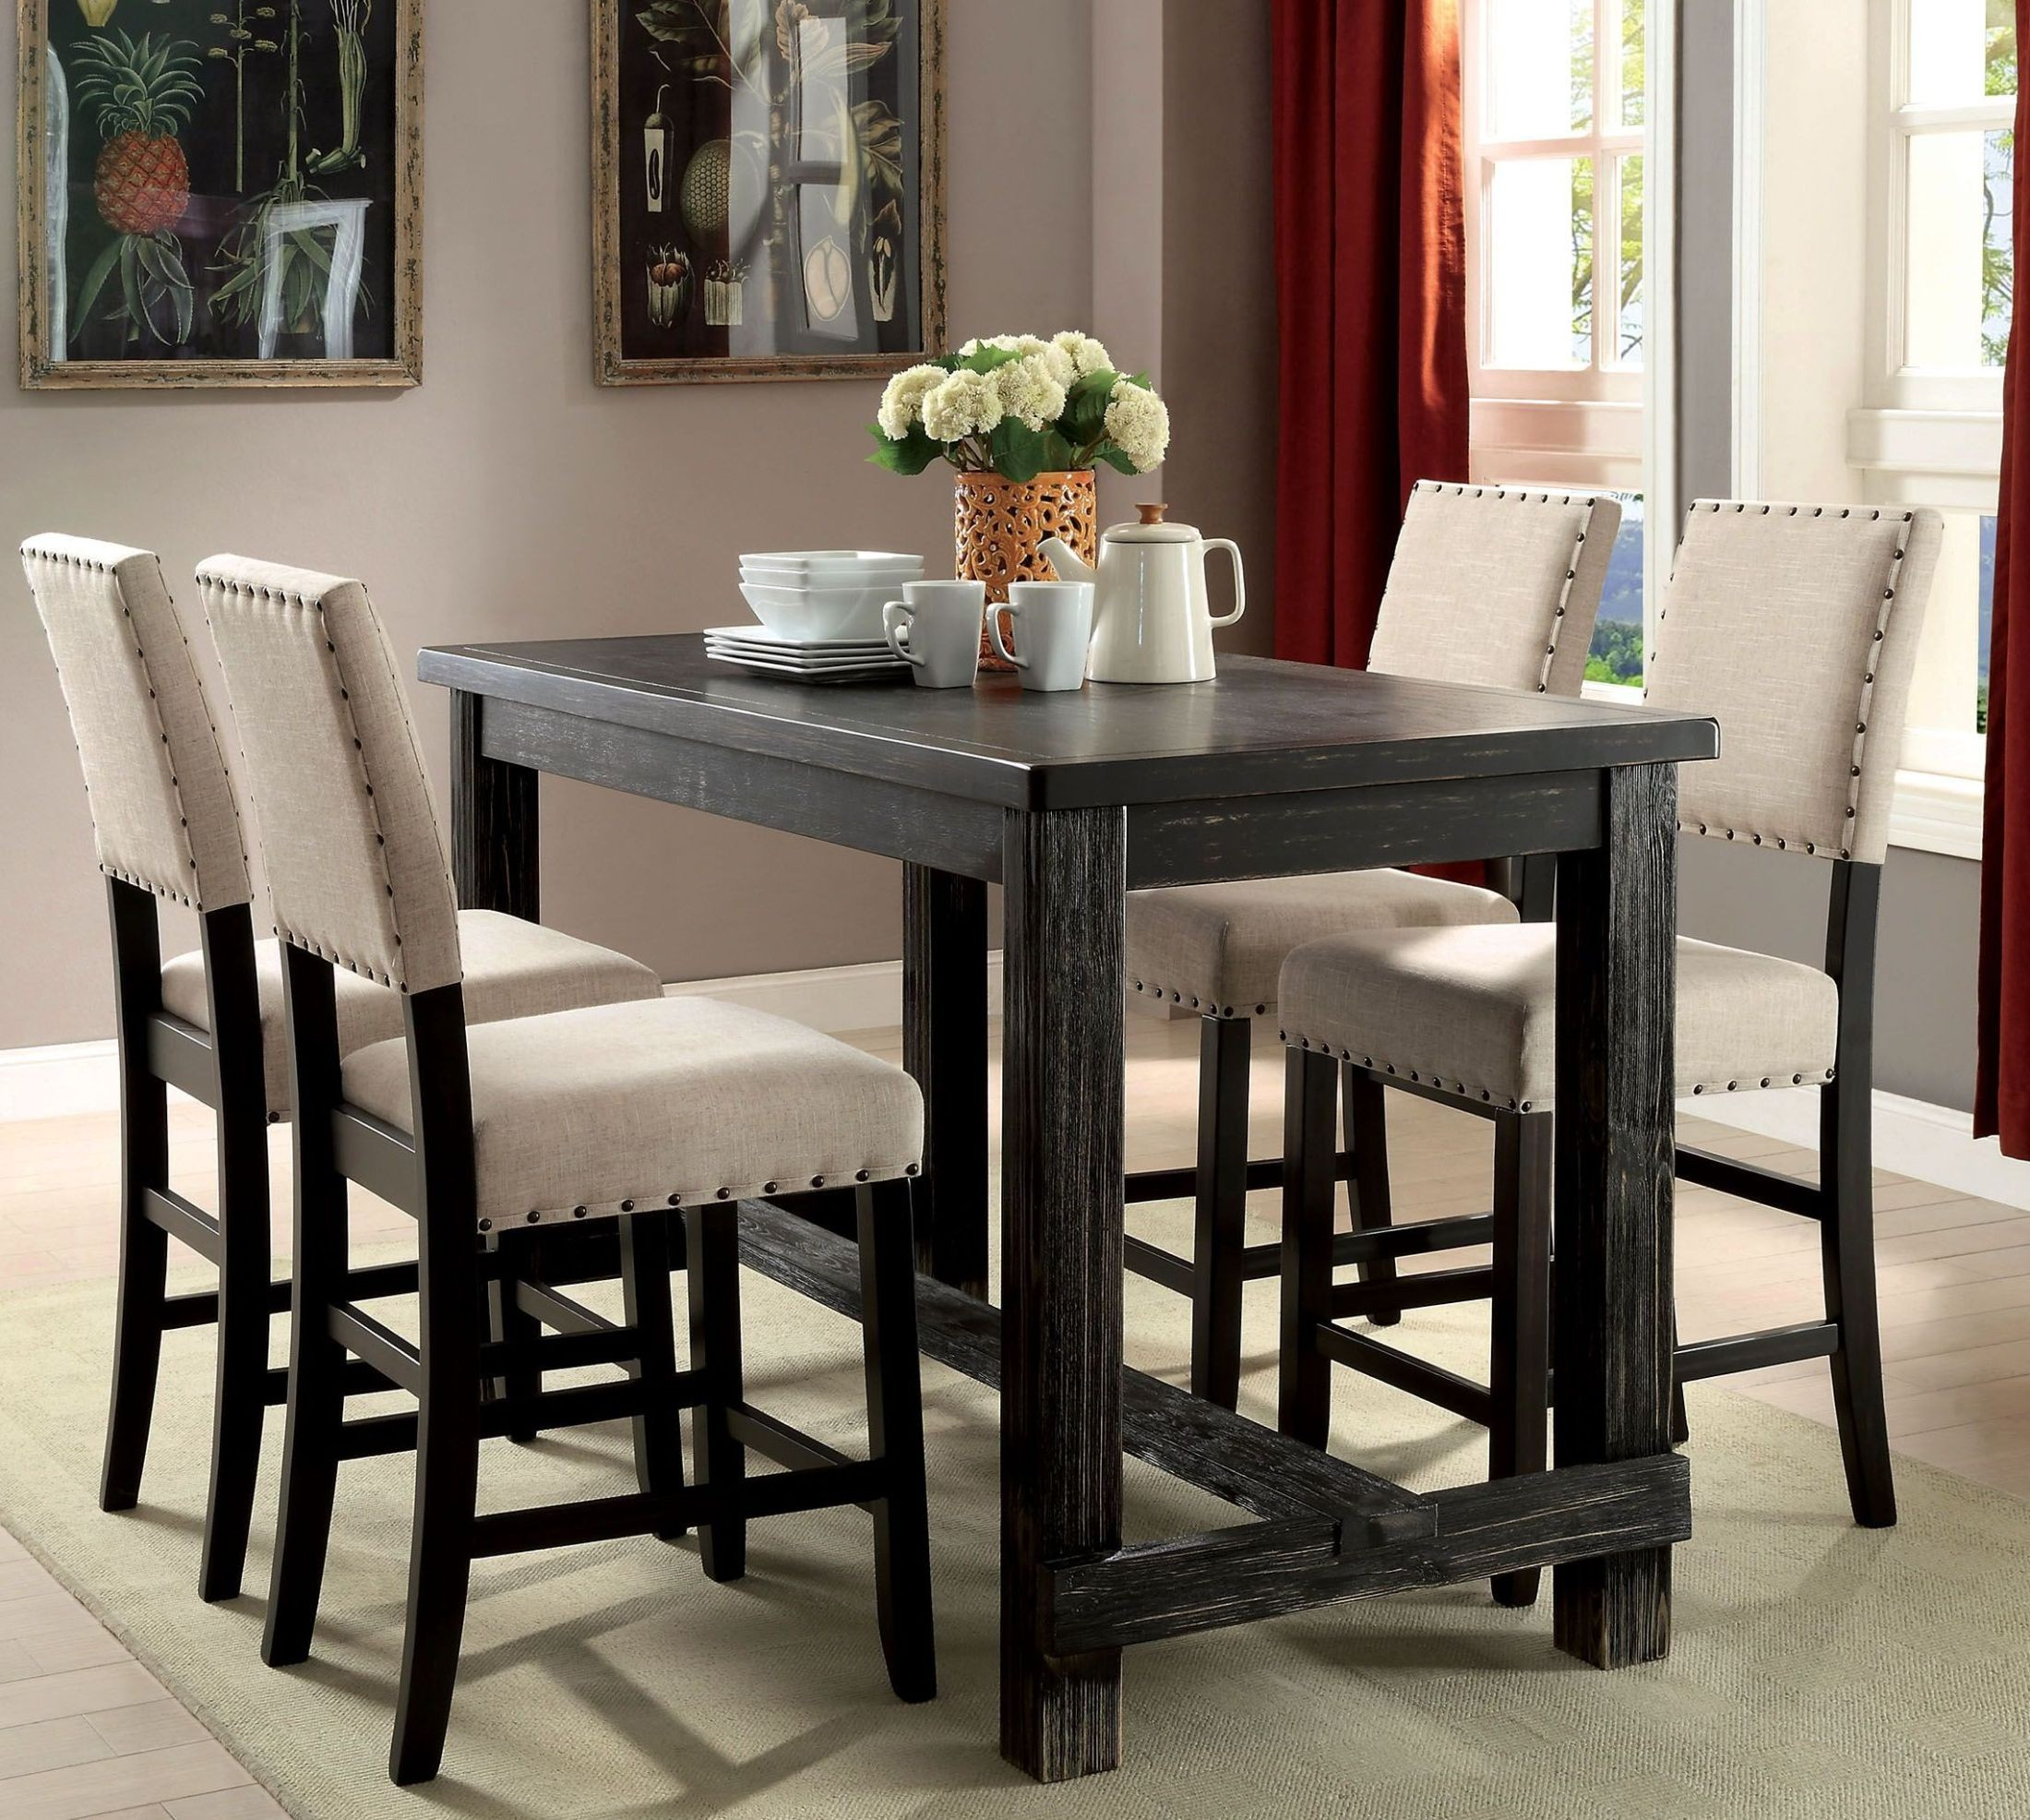 Dining Table Height Cm Sania Ii Antique Black Counter Height Dining Table From